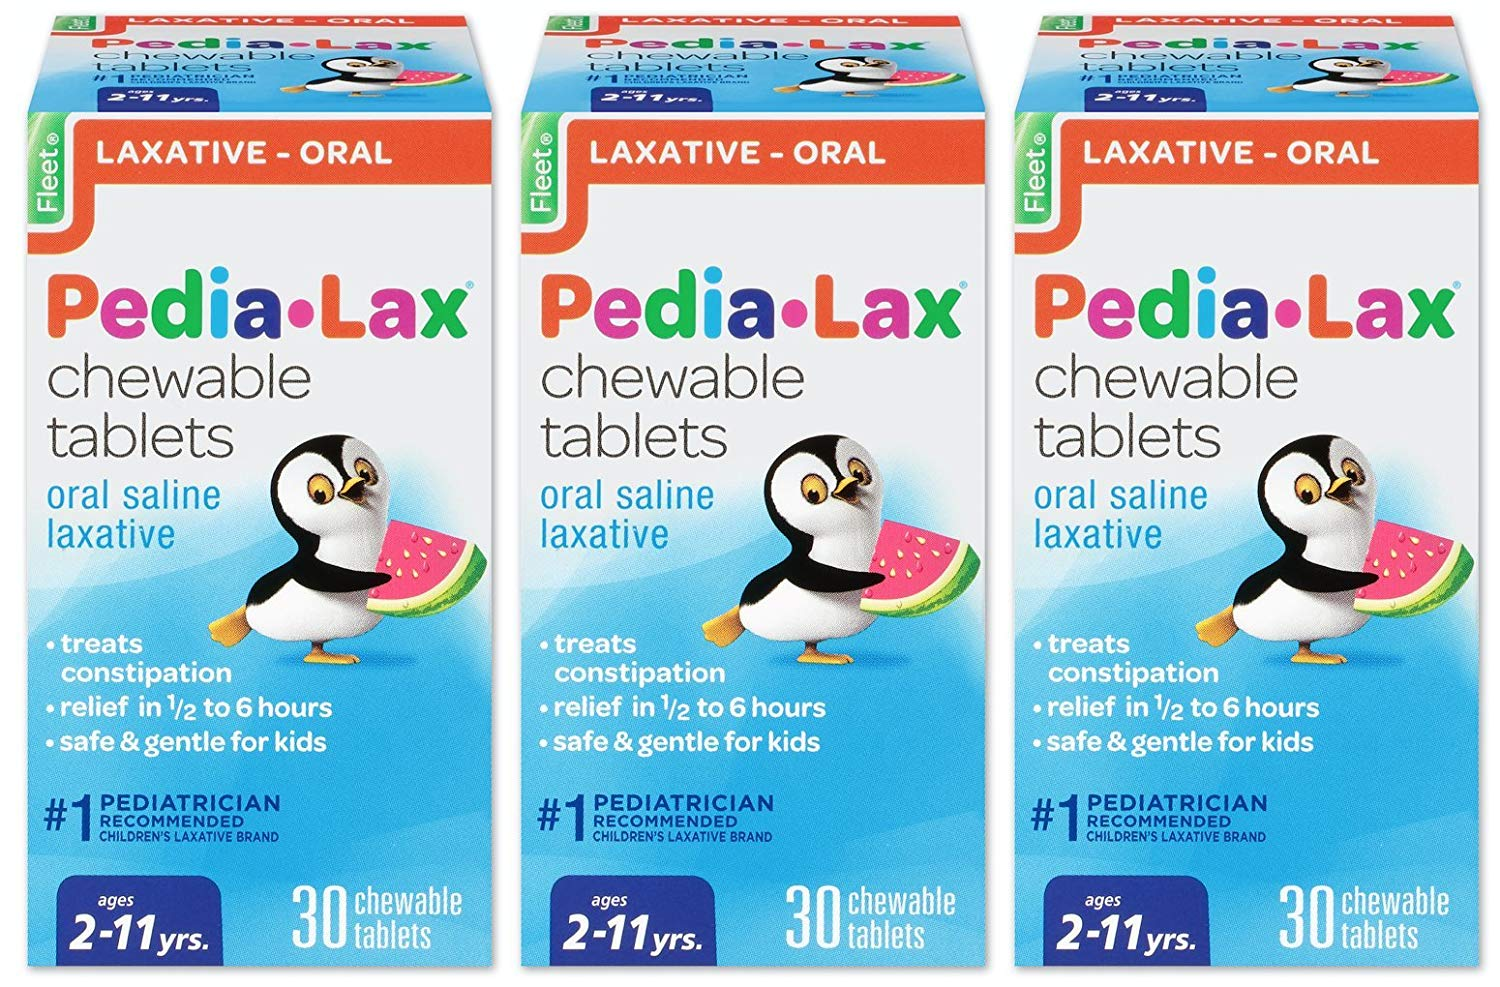 Pedia-Lax Oral Saline Laxative, 30 Chewable Tablets, Pack of 3 - $11.15 plus tax with S&S Amazon